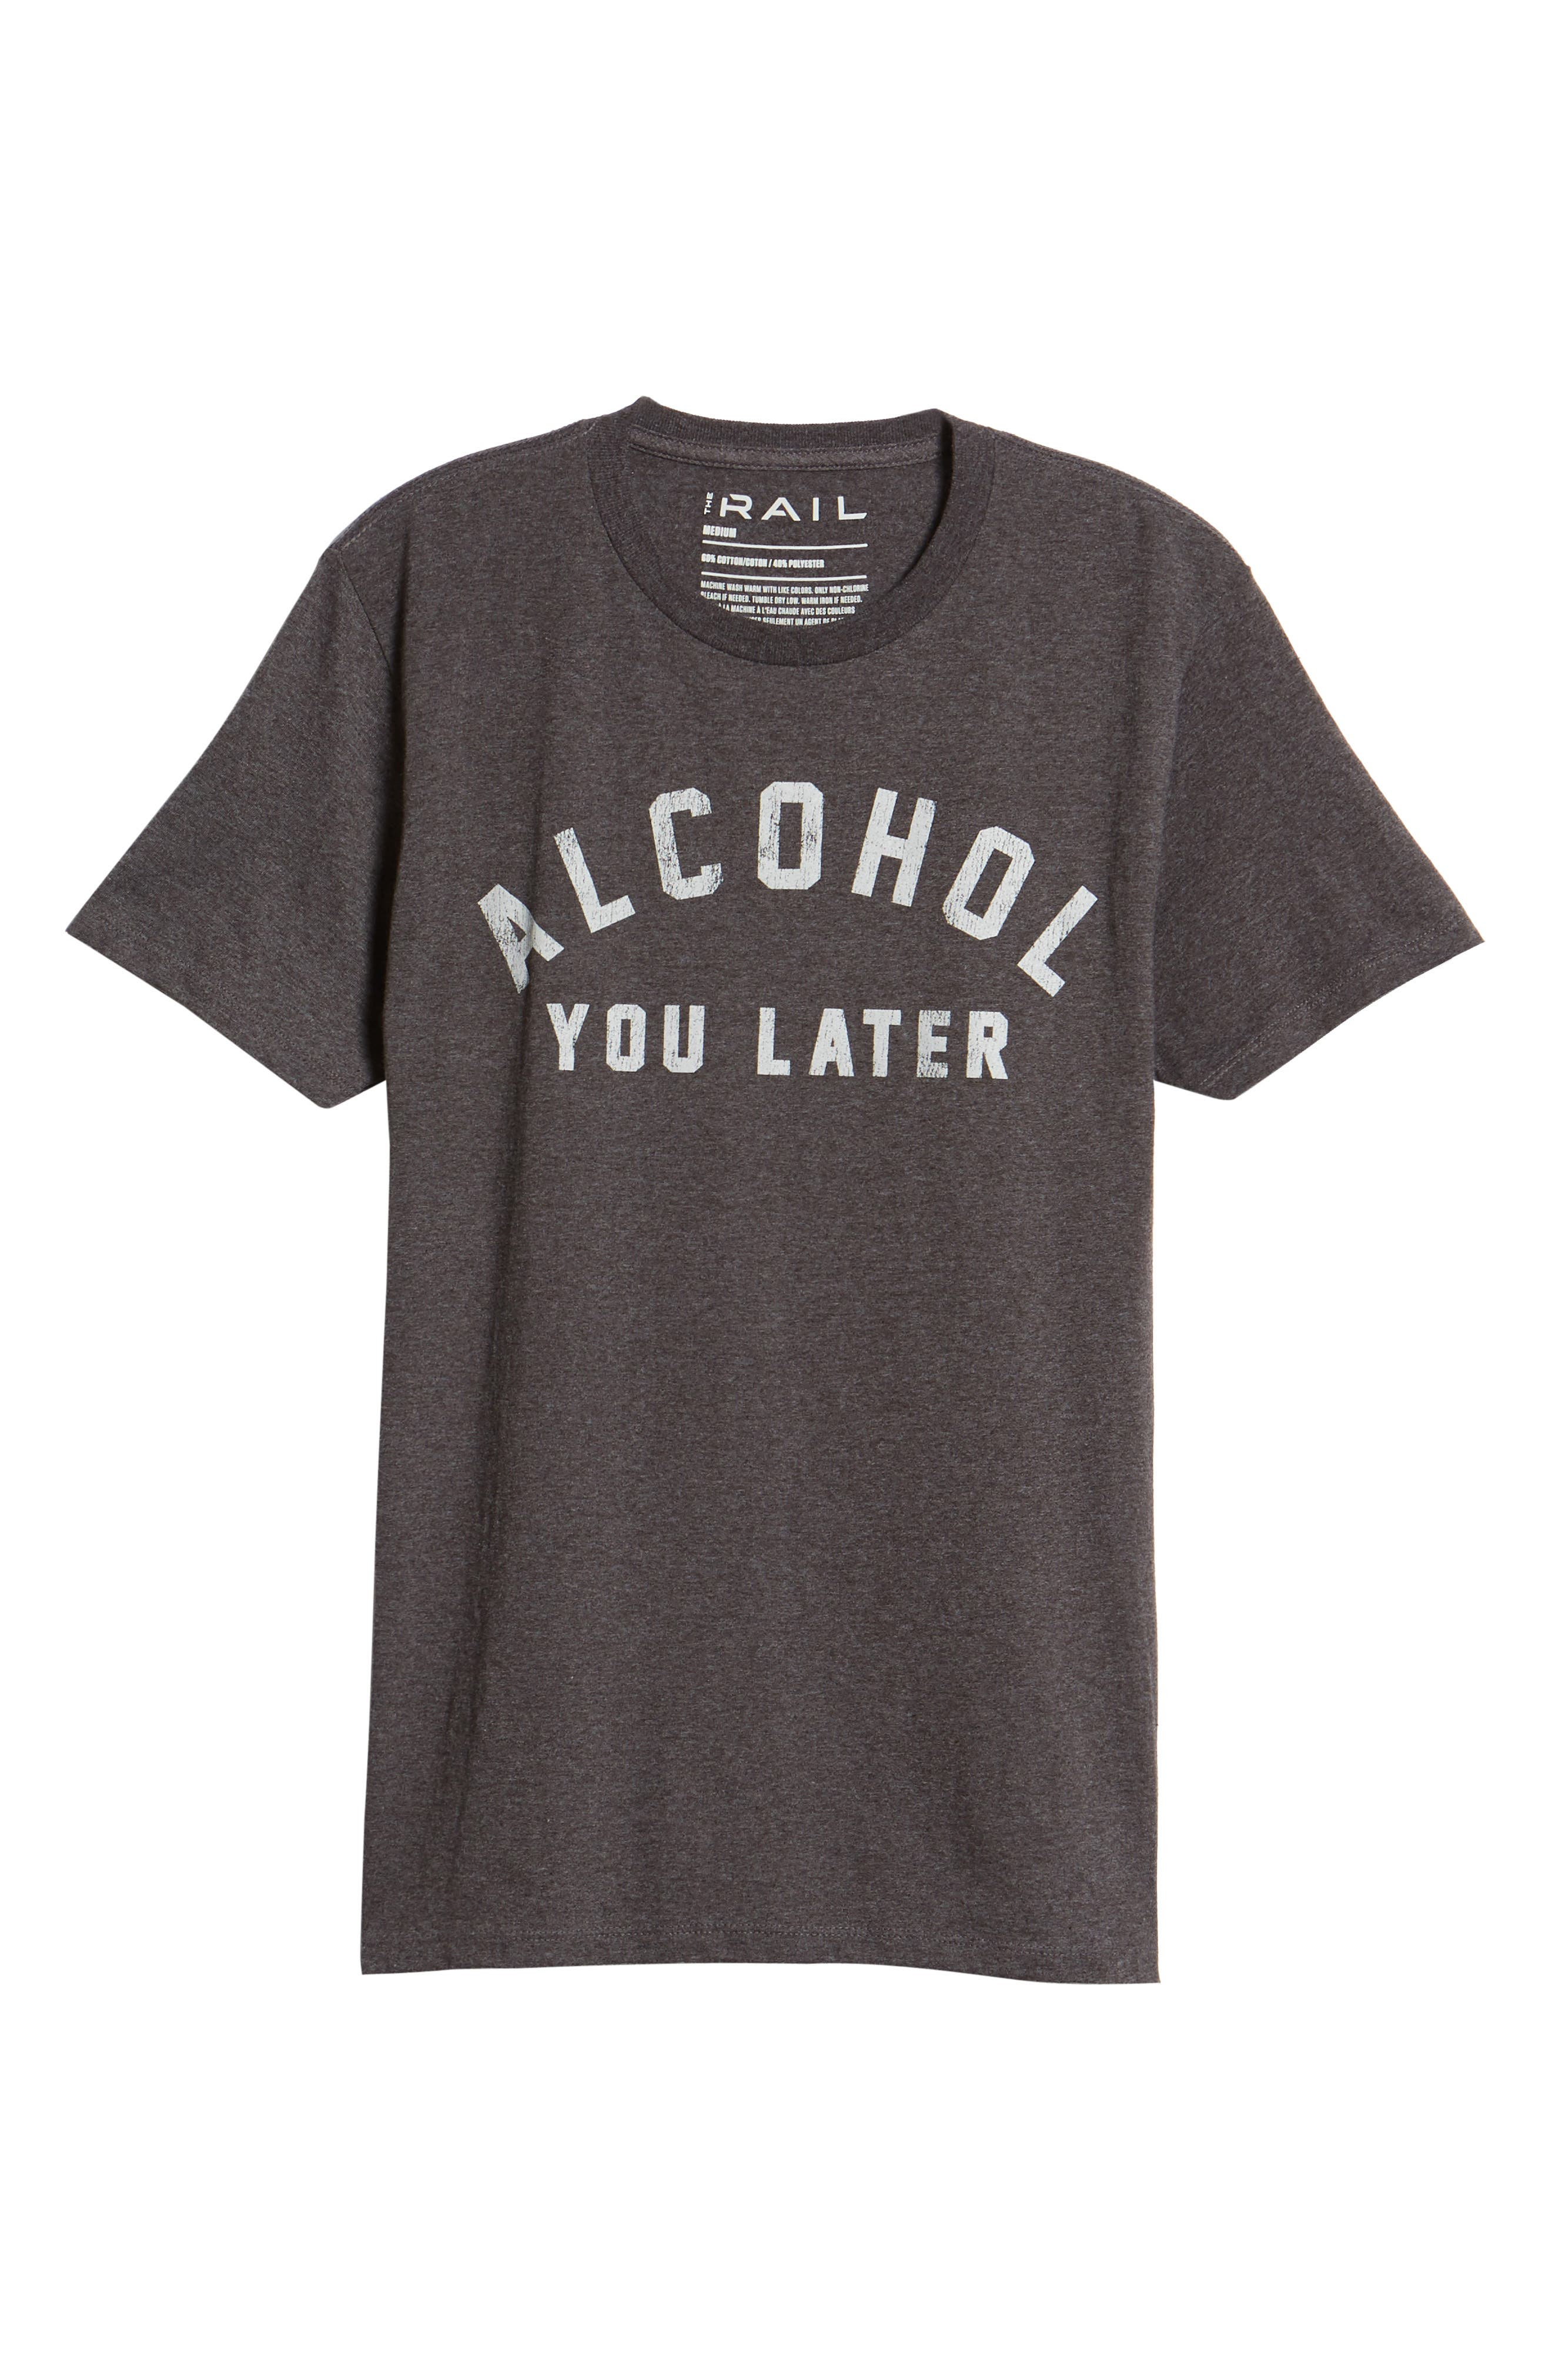 Alcohol You Later T-Shirt,                             Alternate thumbnail 6, color,